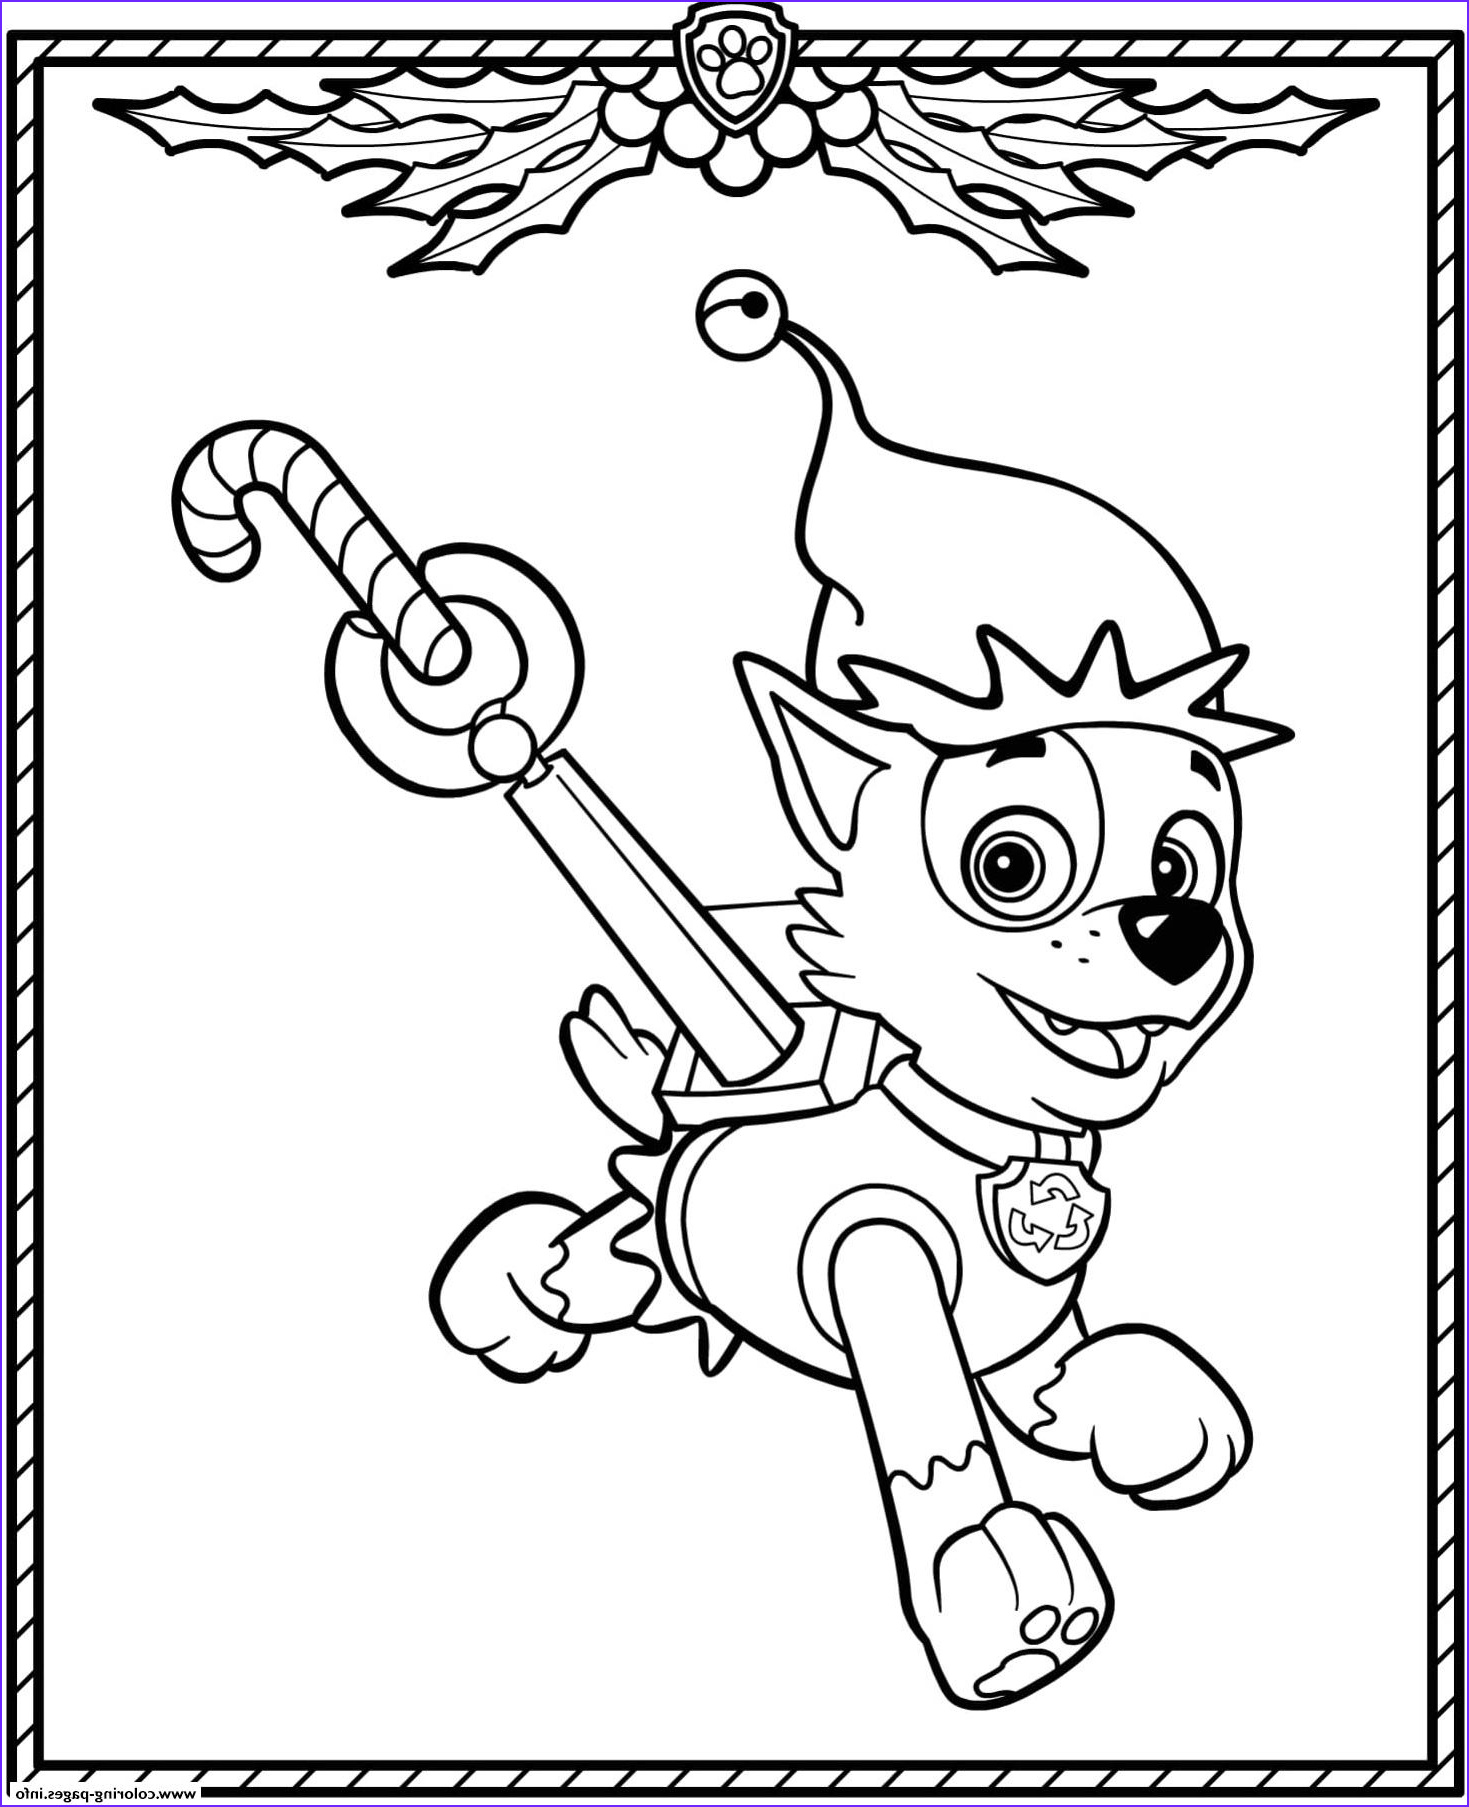 paw patrol holiday christmas rocky printable coloring pages book